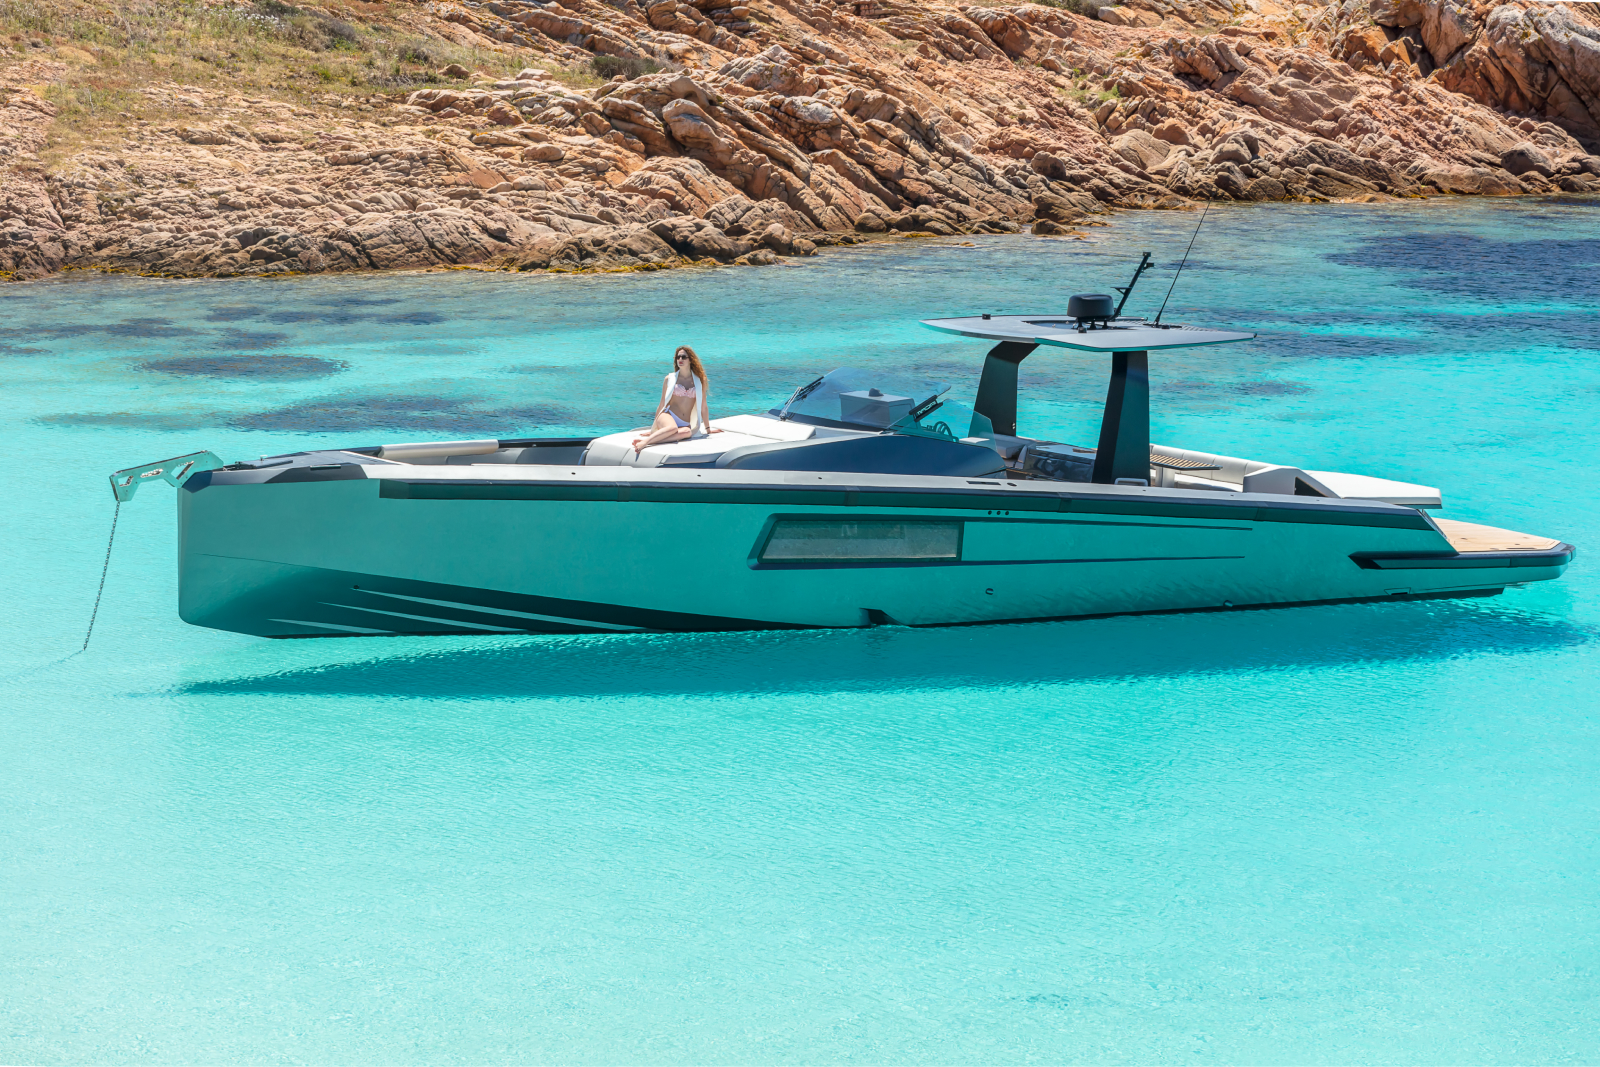 Luxury boat on turquoise blue water